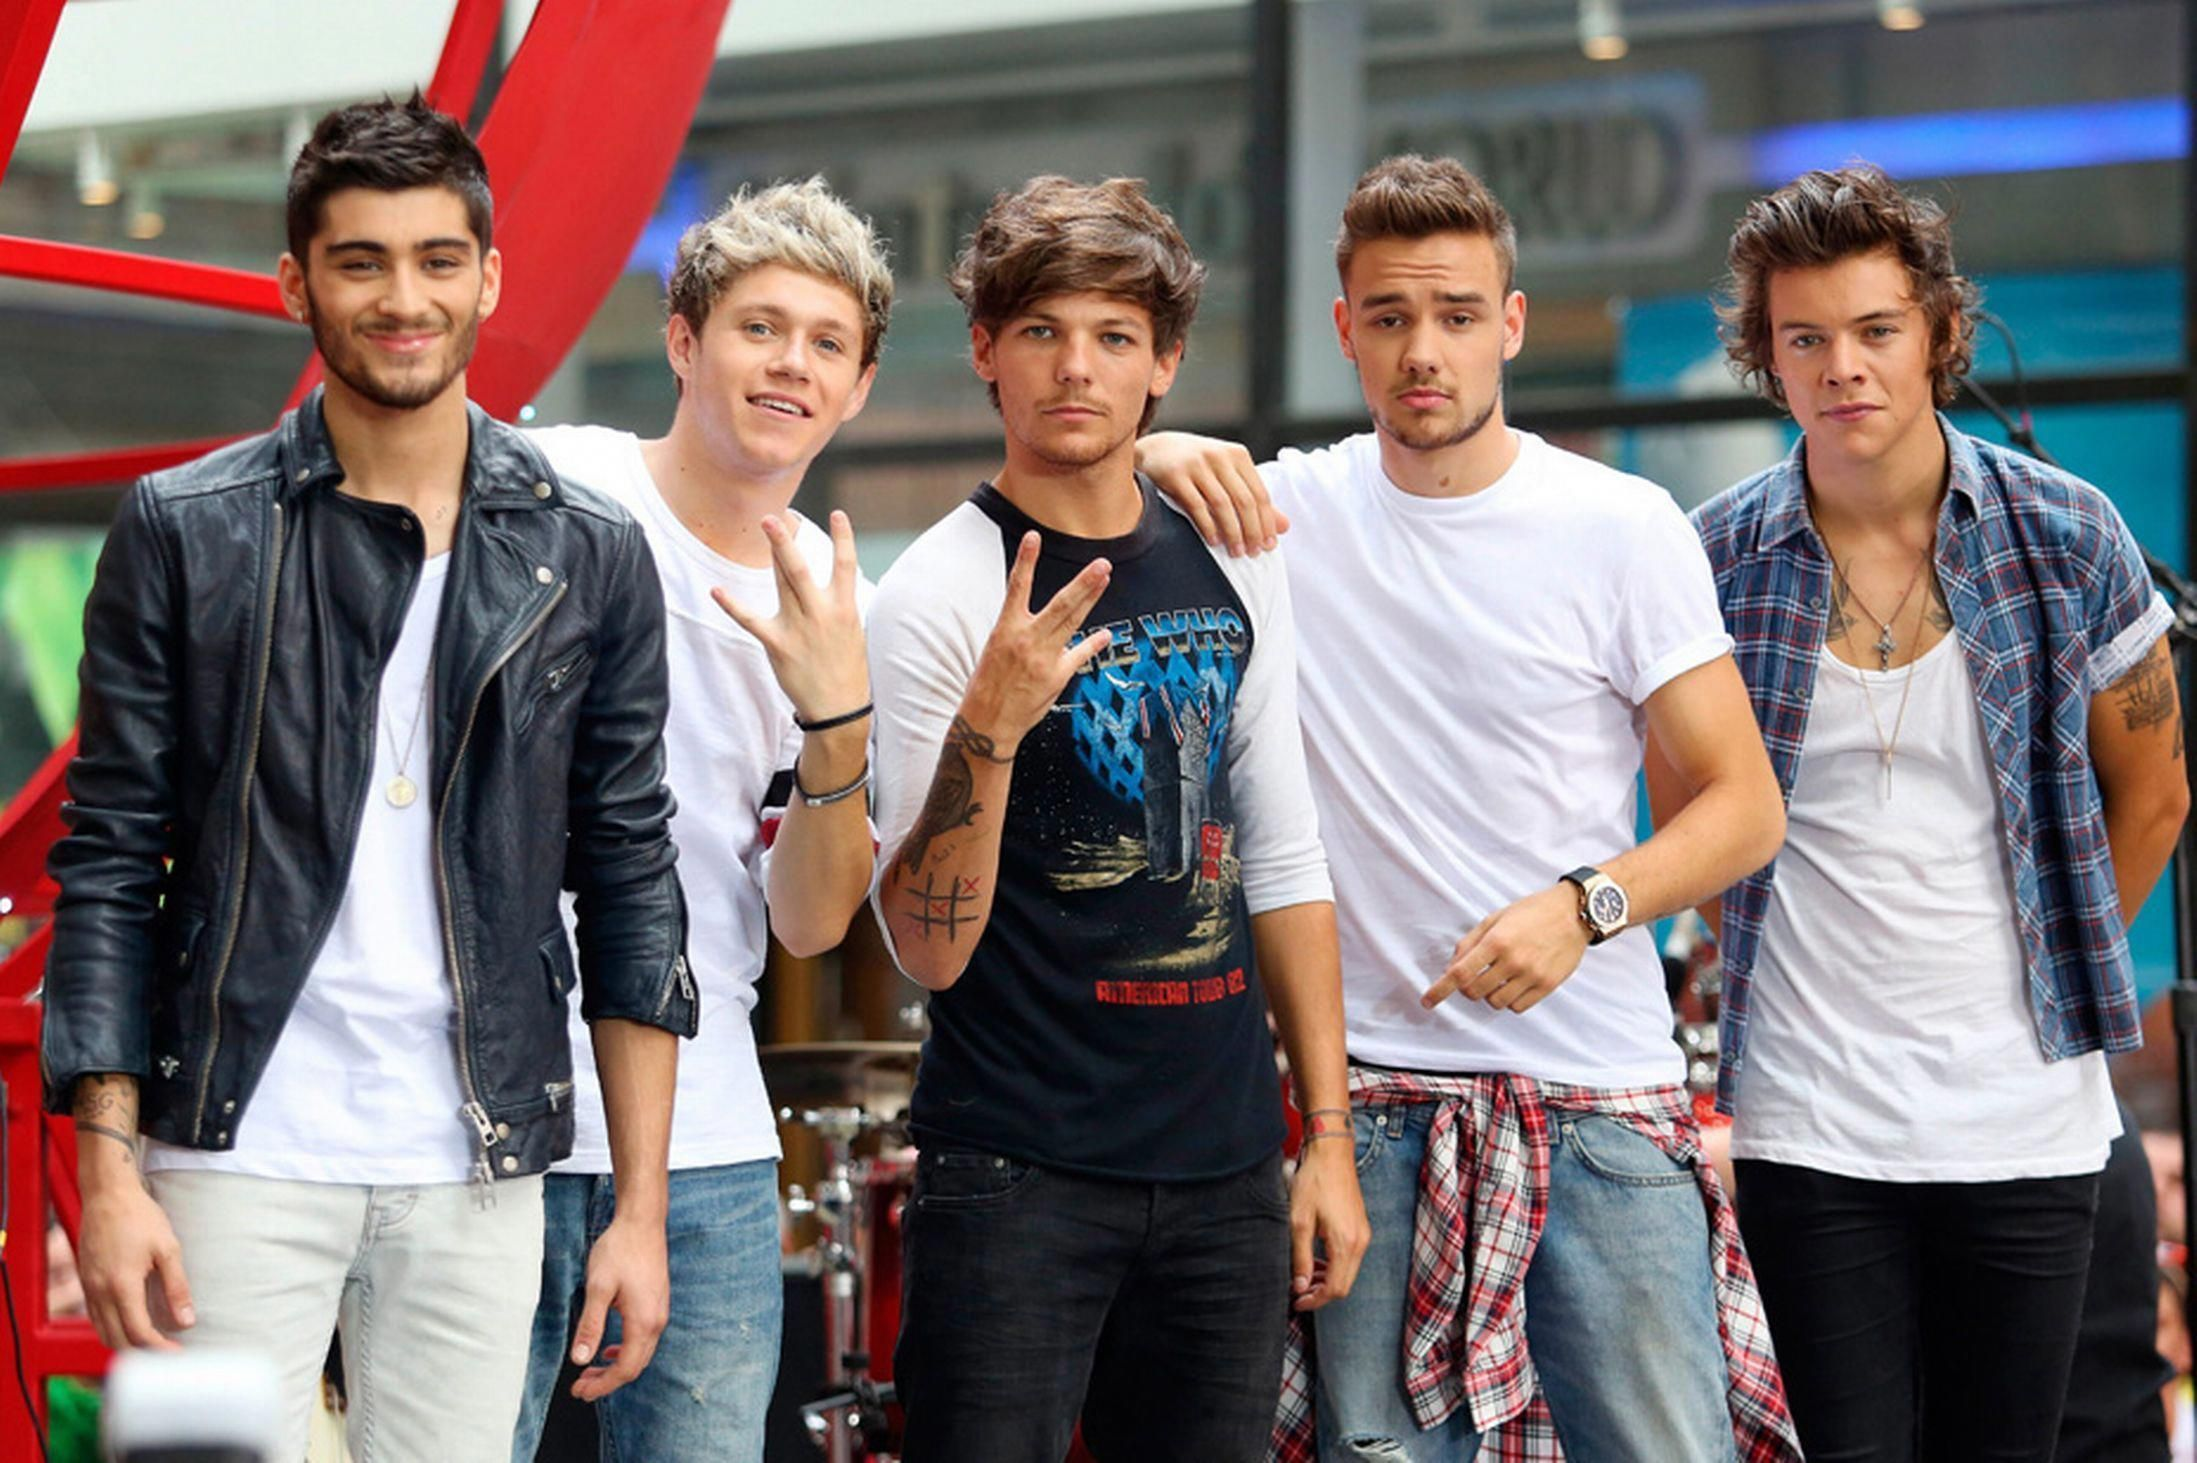 one direction 2014   from one direction style 2014 wallpaper one direction style 2014 ... #zaynmalikwallpaper #onedirection2014 one direction 2014   from one direction style 2014 wallpaper one direction style 2014 ... #zaynmalikwallpaper #onedirection2014 one direction 2014   from one direction style 2014 wallpaper one direction style 2014 ... #zaynmalikwallpaper #onedirection2014 one direction 2014   from one direction style 2014 wallpaper one direction style 2014 ... #zaynmalikwallpaper #onedirection2014